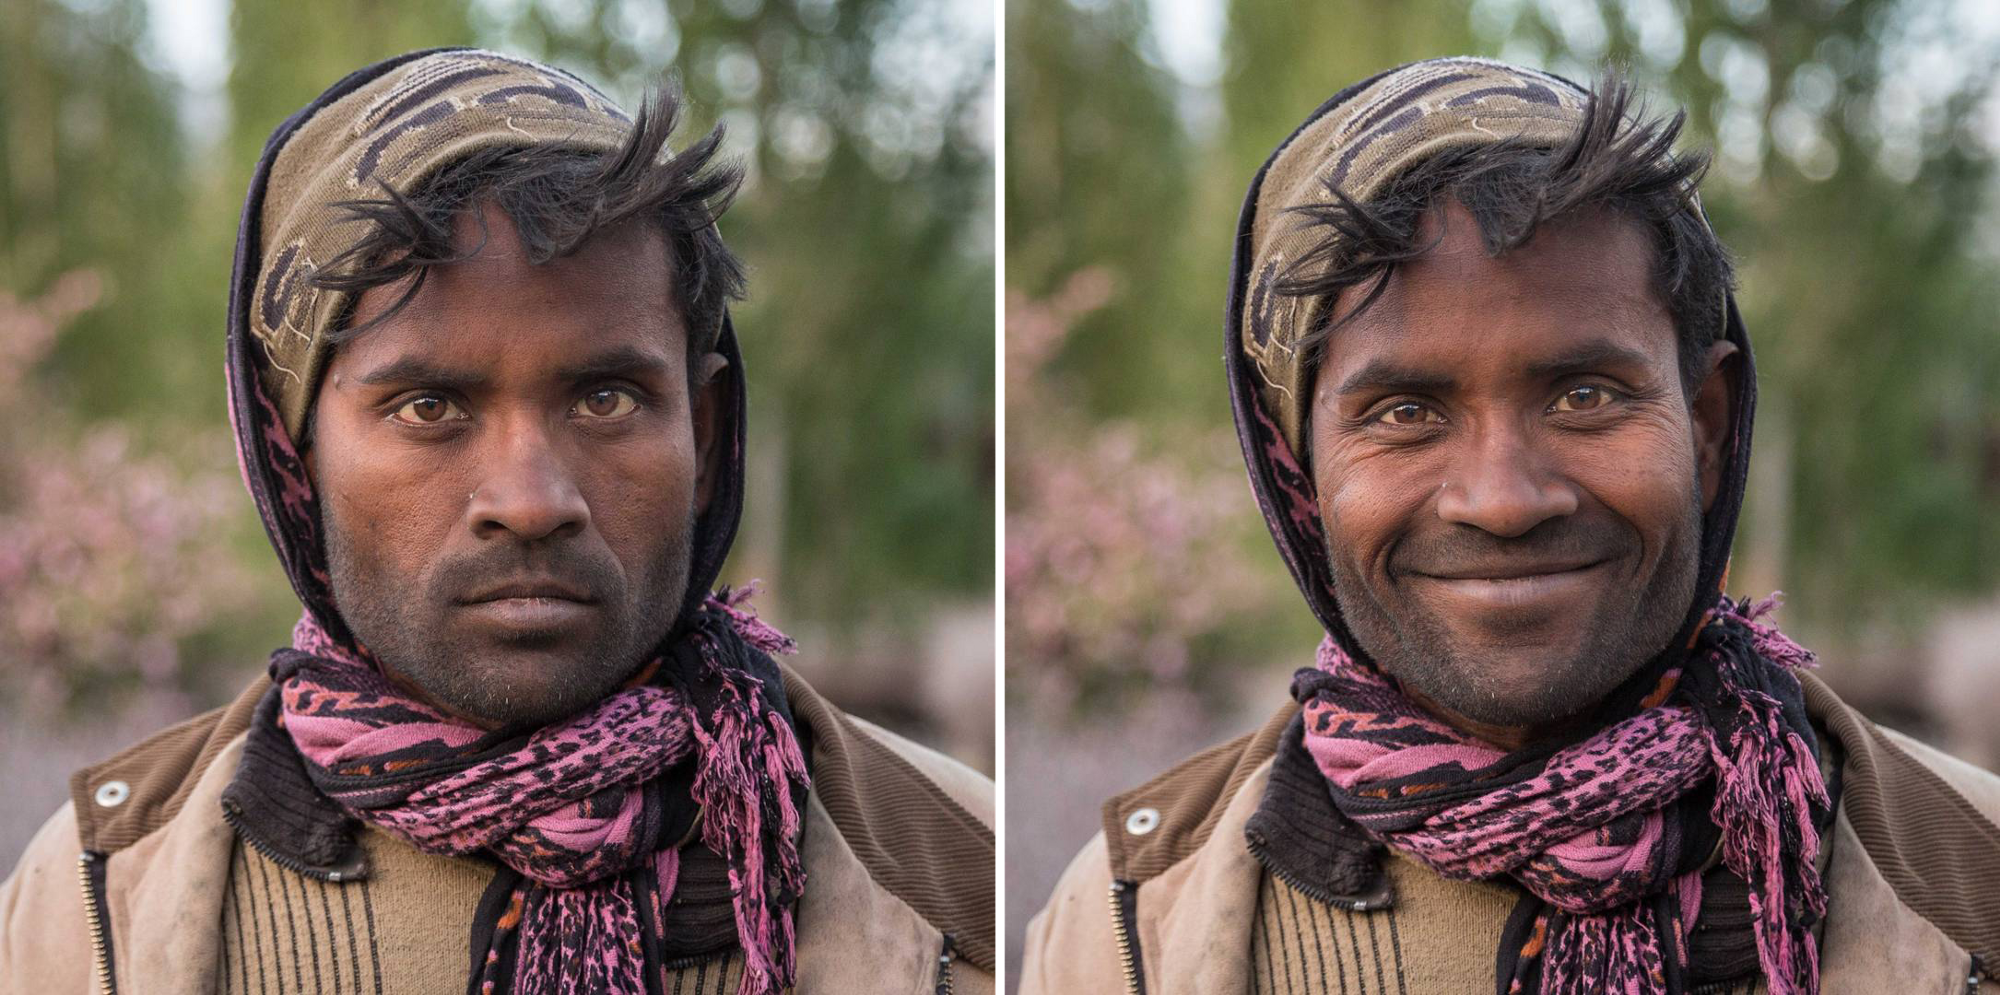 Two photos of a man wearing a pink scarf and head covering, on the left he looks serious and on the right he is smiling